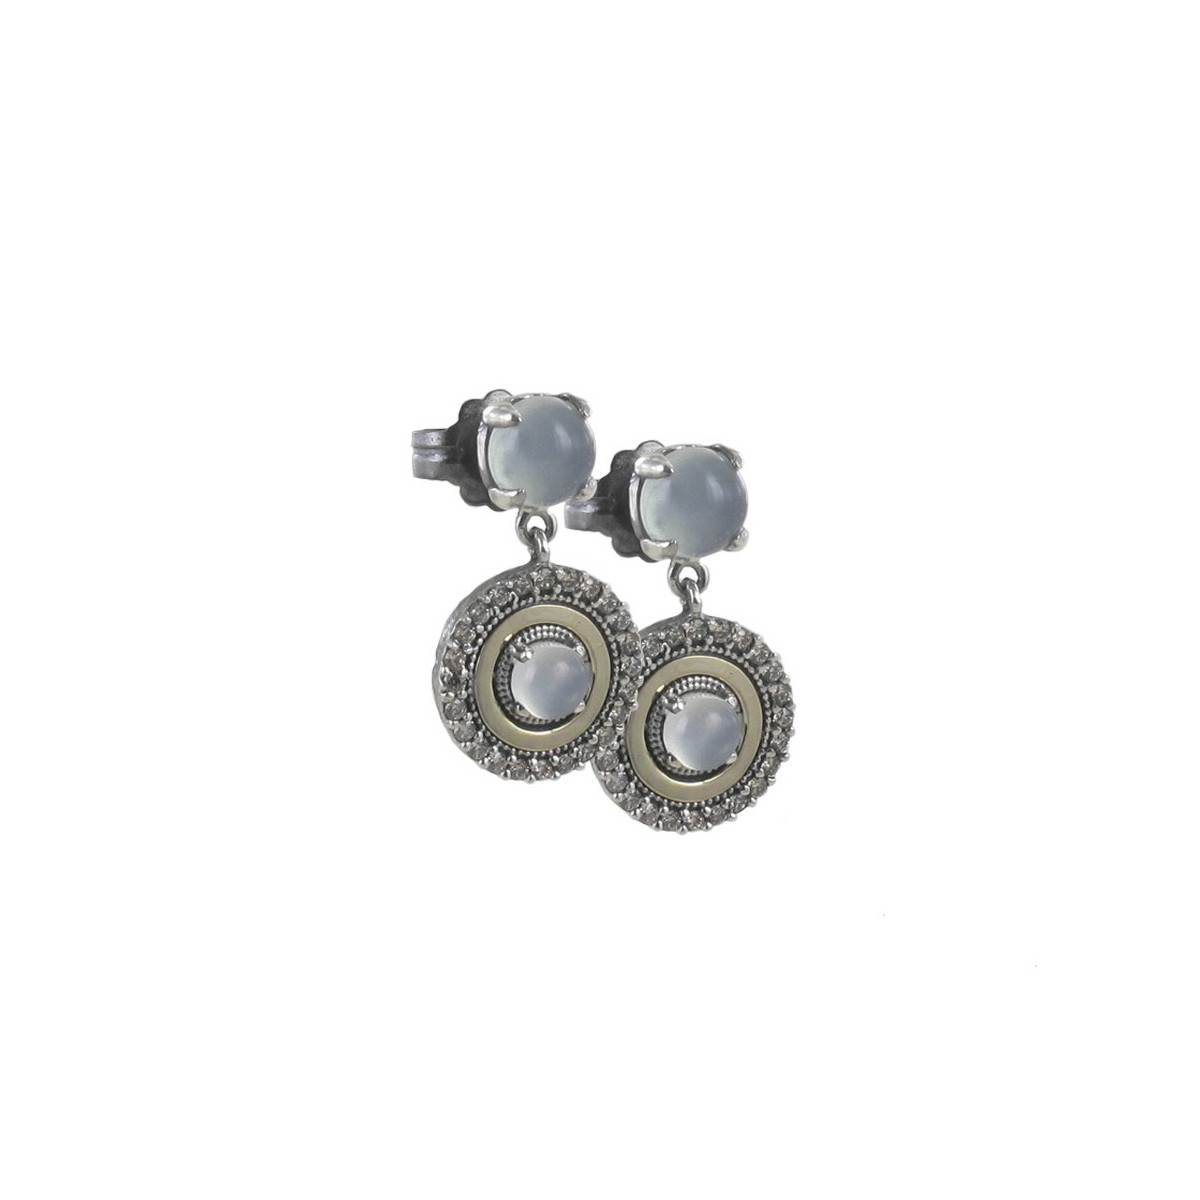 18 KT GOLD AND SILVER EARRINGS